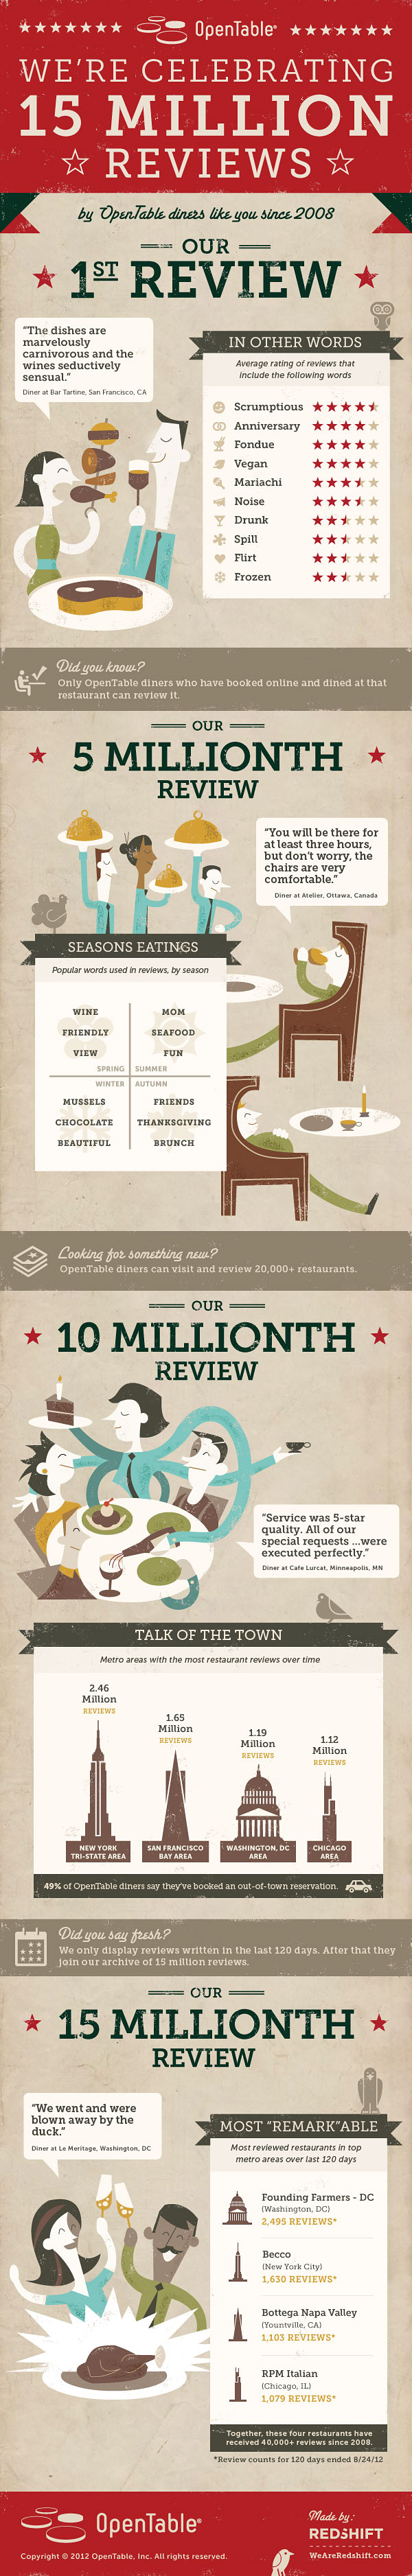 OpenTable review infographic OpenTable Celebrates 15 Million Restaurant Reviews: What Are Your Stats?